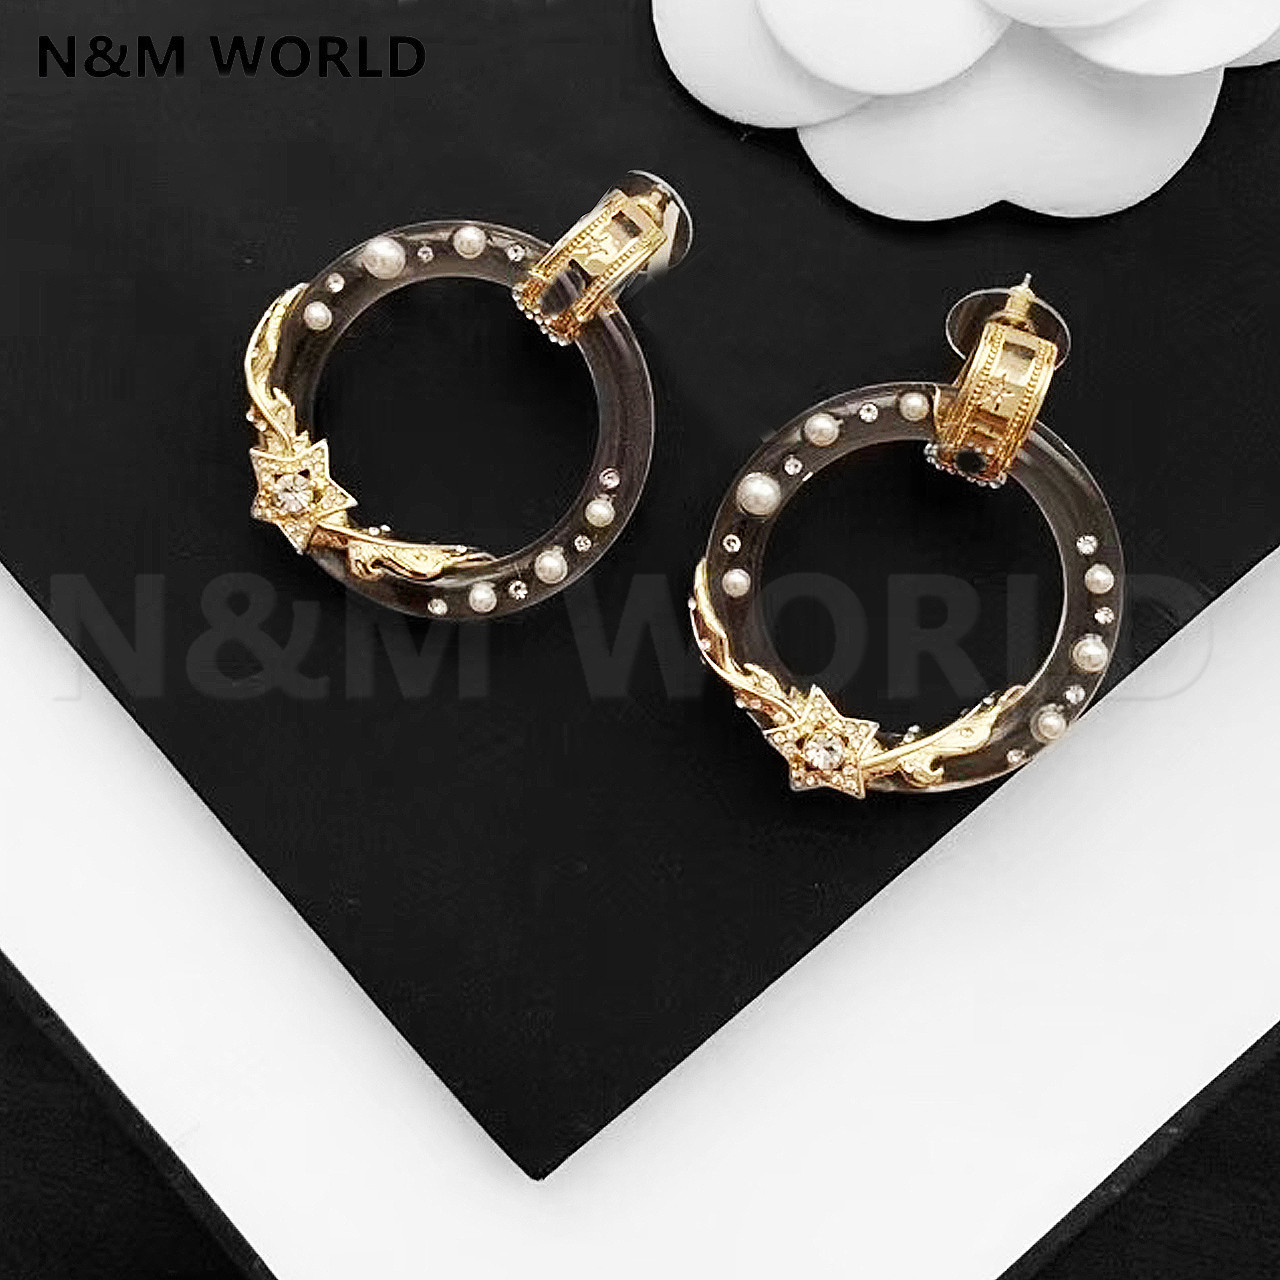 New Transparent Gold Stars Hoop Earring Fashion Jewelry Simple New Style Accessories For Valentine's Day Gift Women Pretty Gift